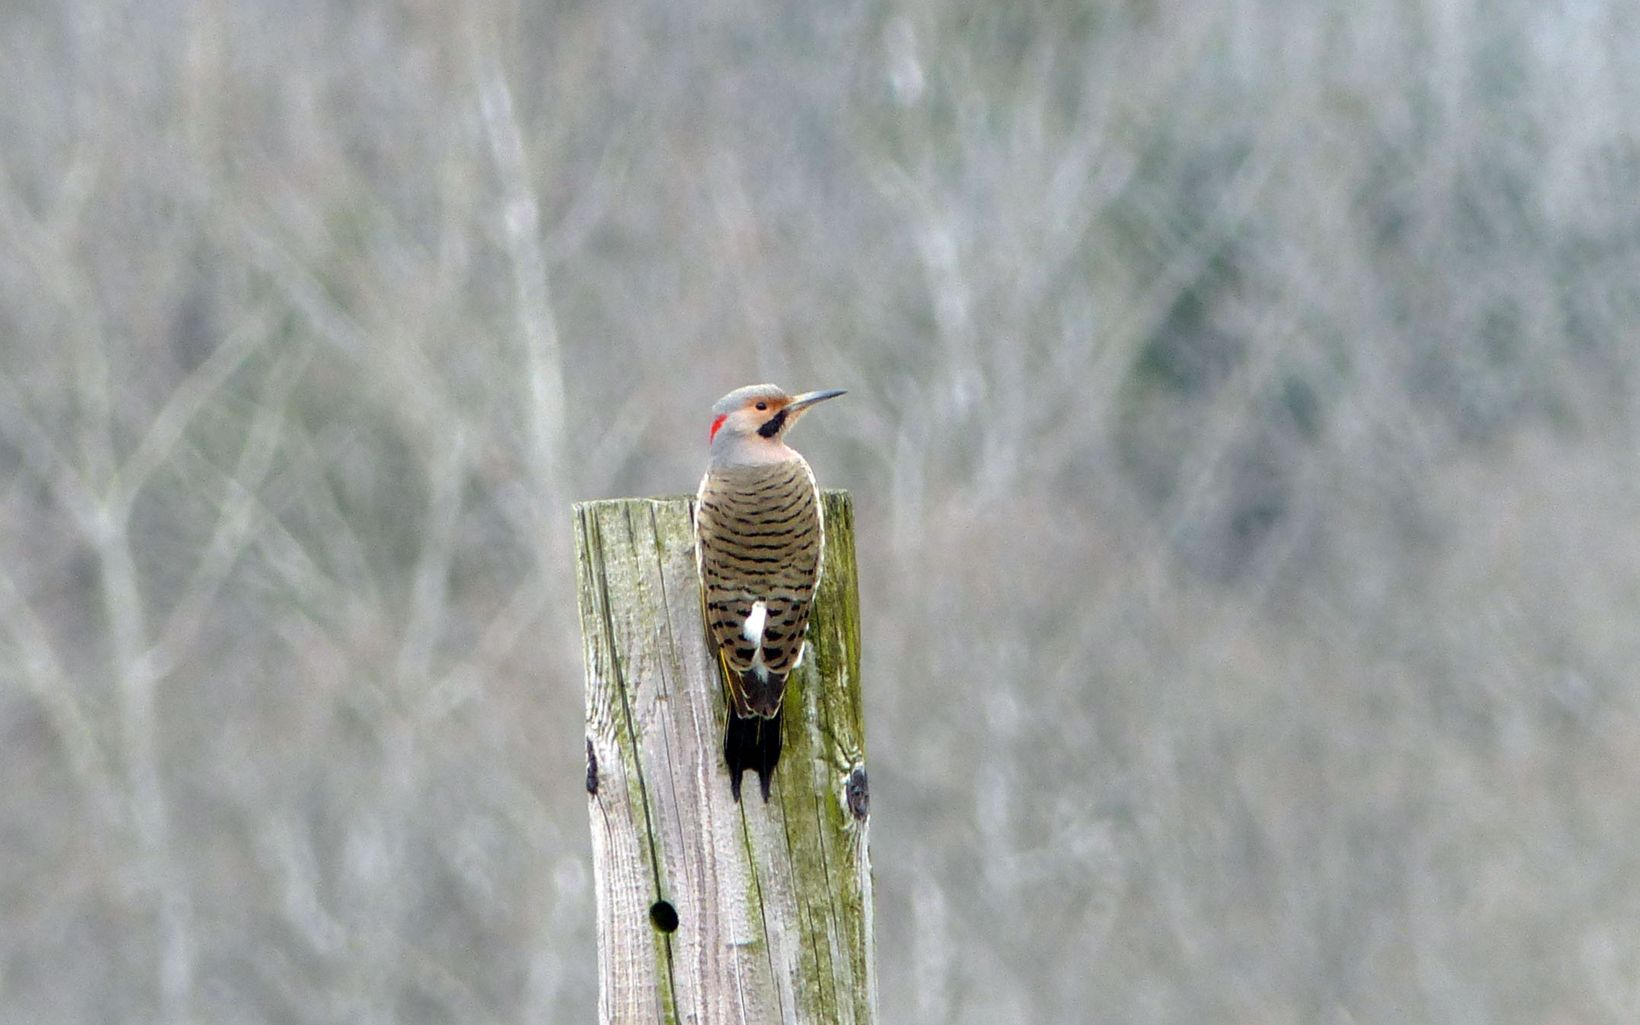 A gray, black and red woodpecker perched on a fence post.